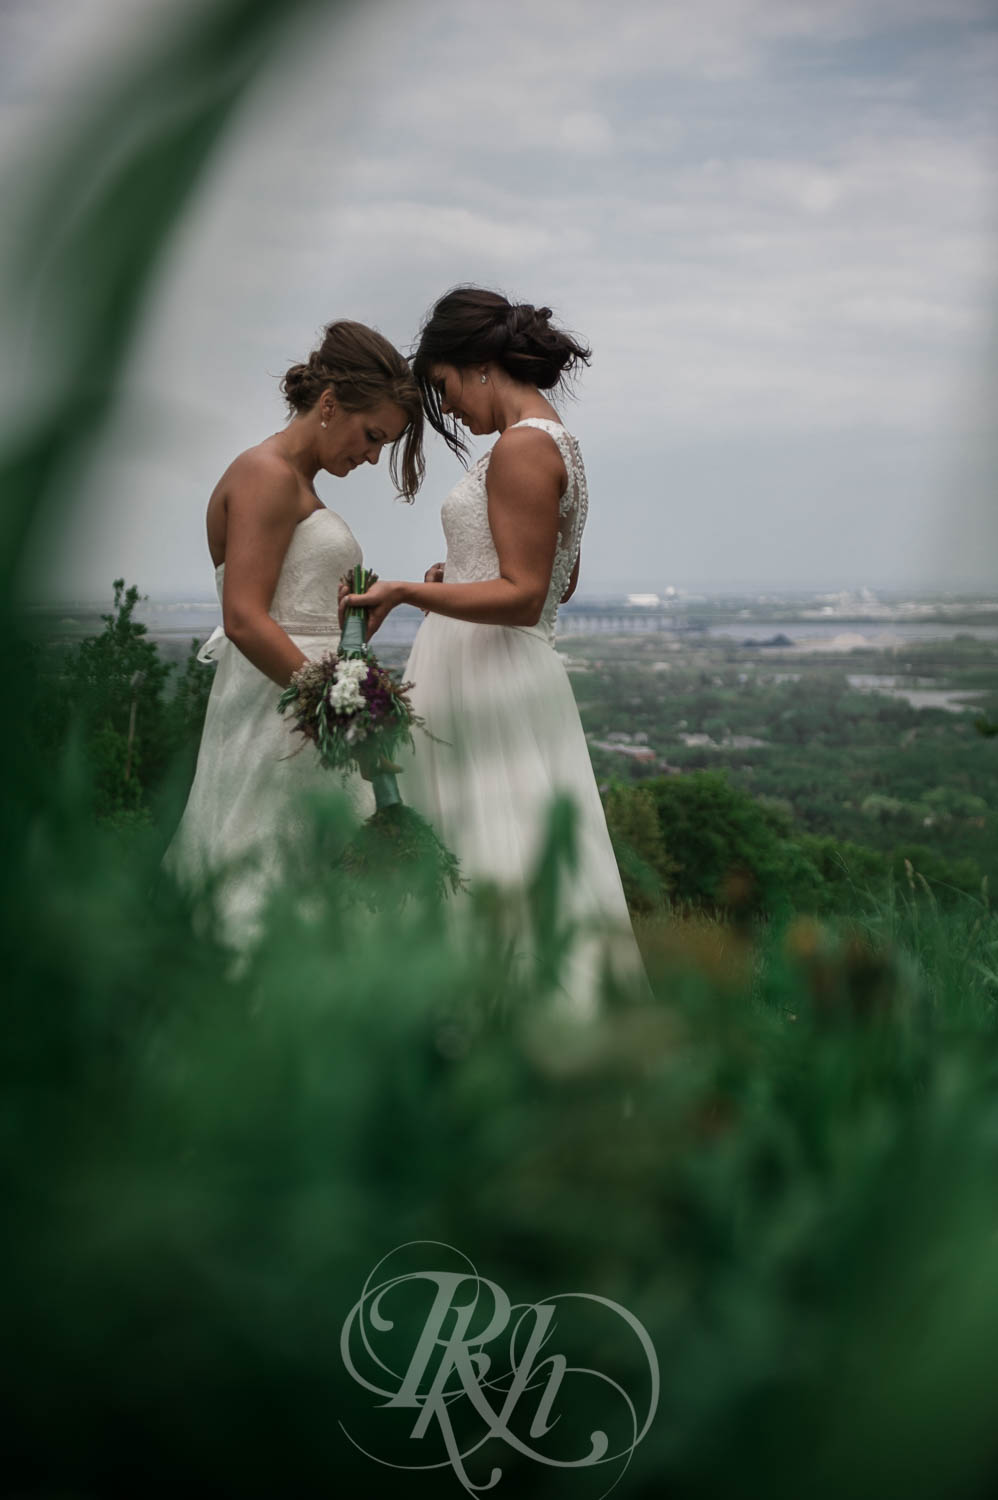 Britni & Paige - LGBT Minnesota Wedding Photography - Spirit Mountain - RKH Images  (26 of 32).jpg